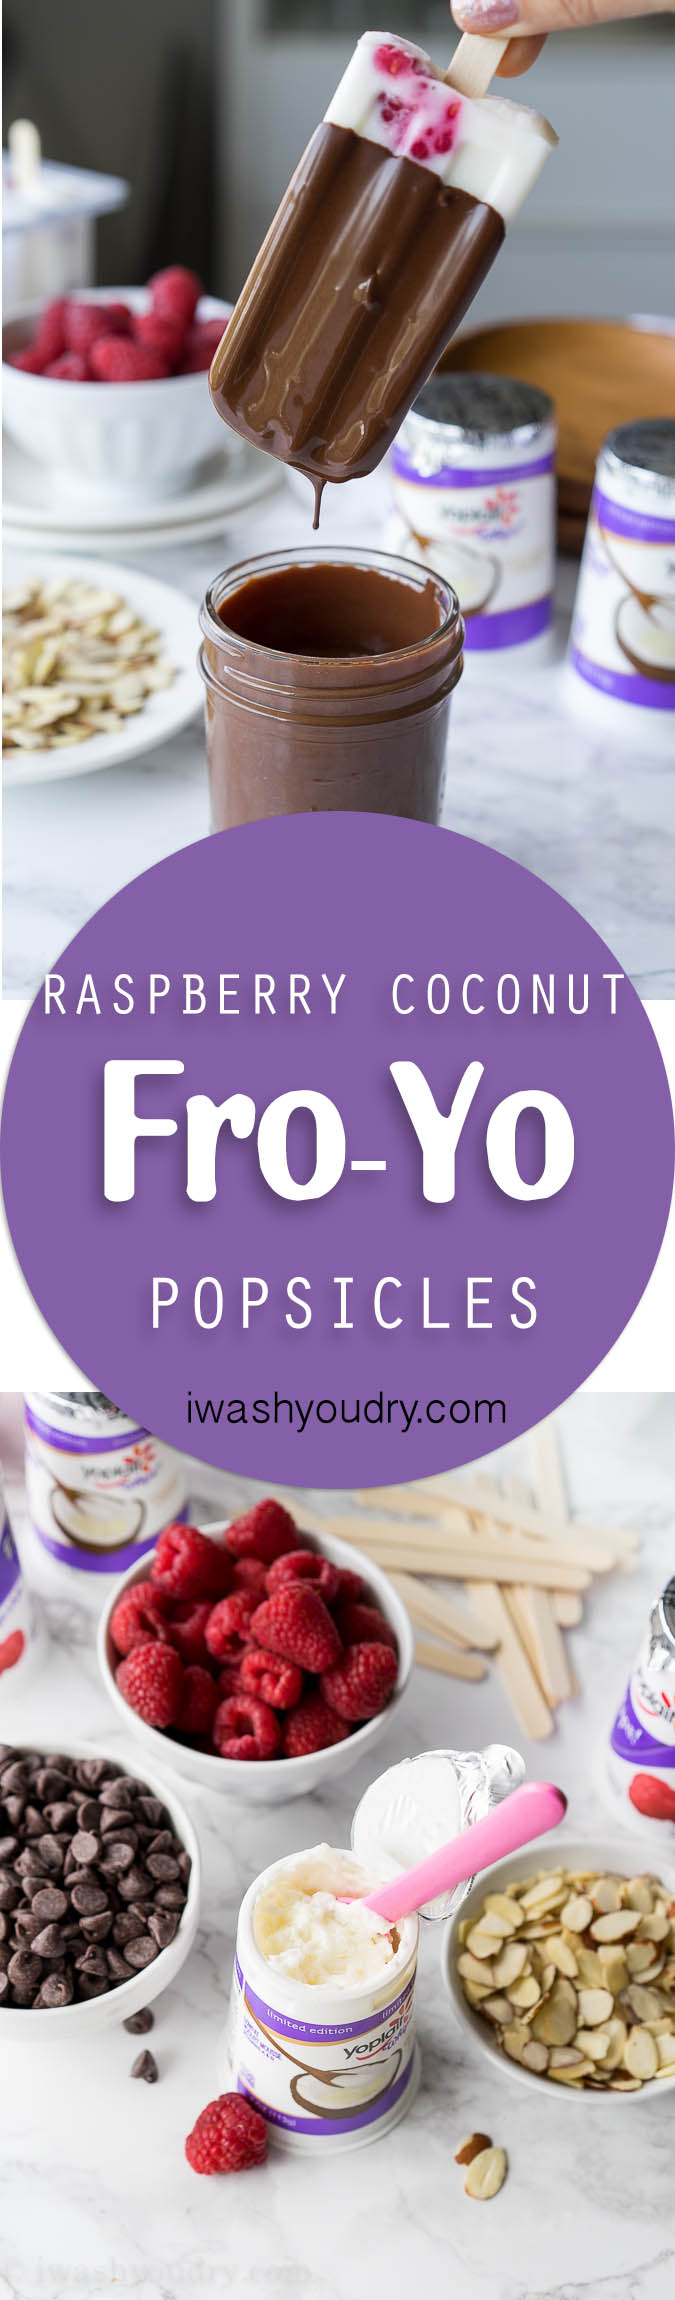 These Raspberry Coconut Fro-Yo Popsicles are just 4 ingredients (including the chocolate!). So fresh and creamy!